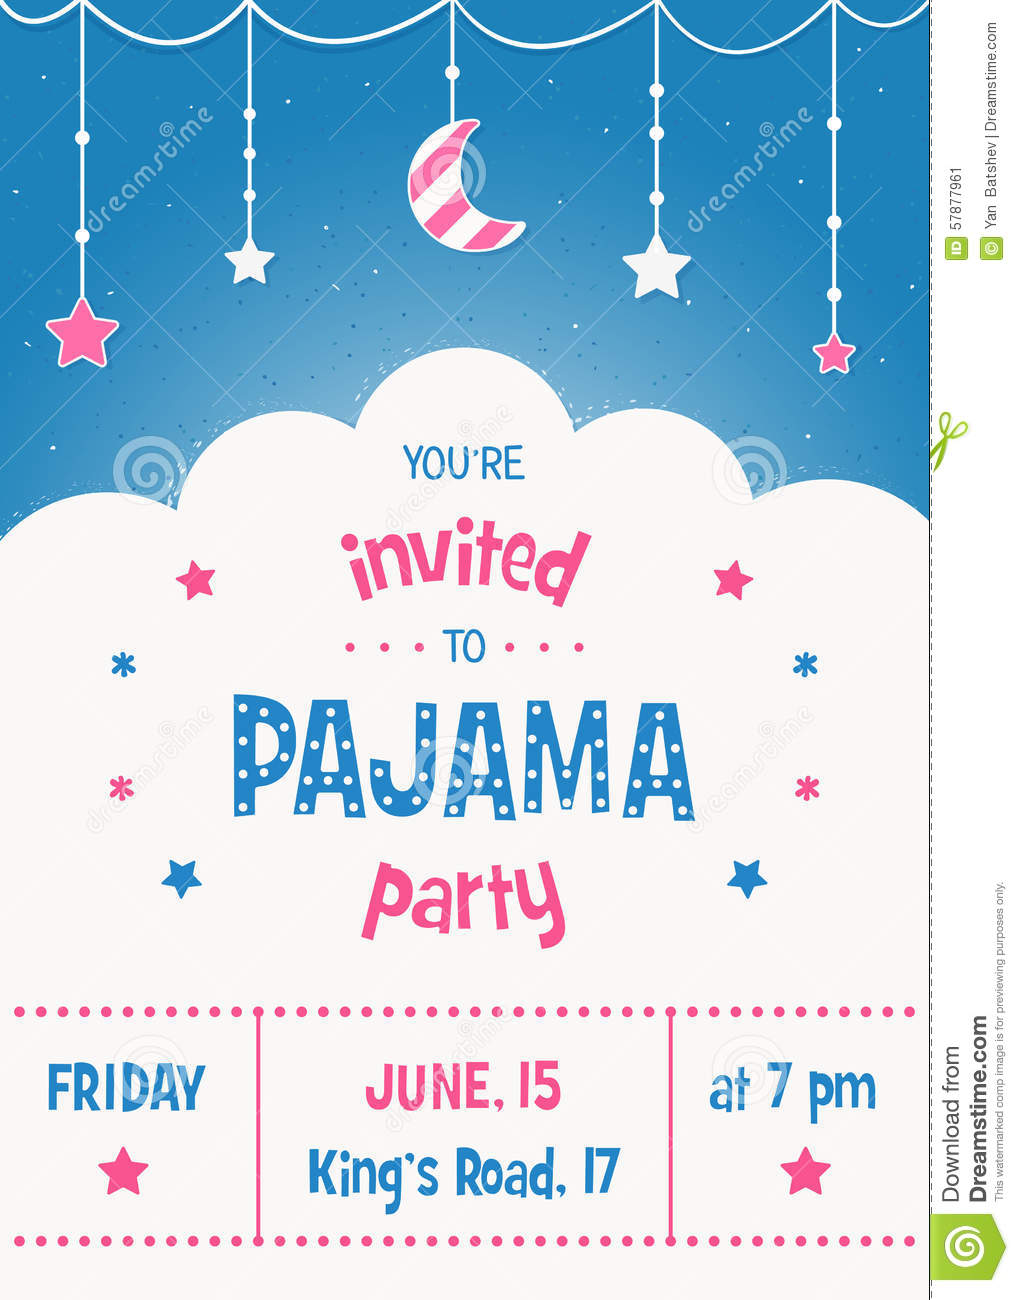 pajama party invitation card template with stars  moon and